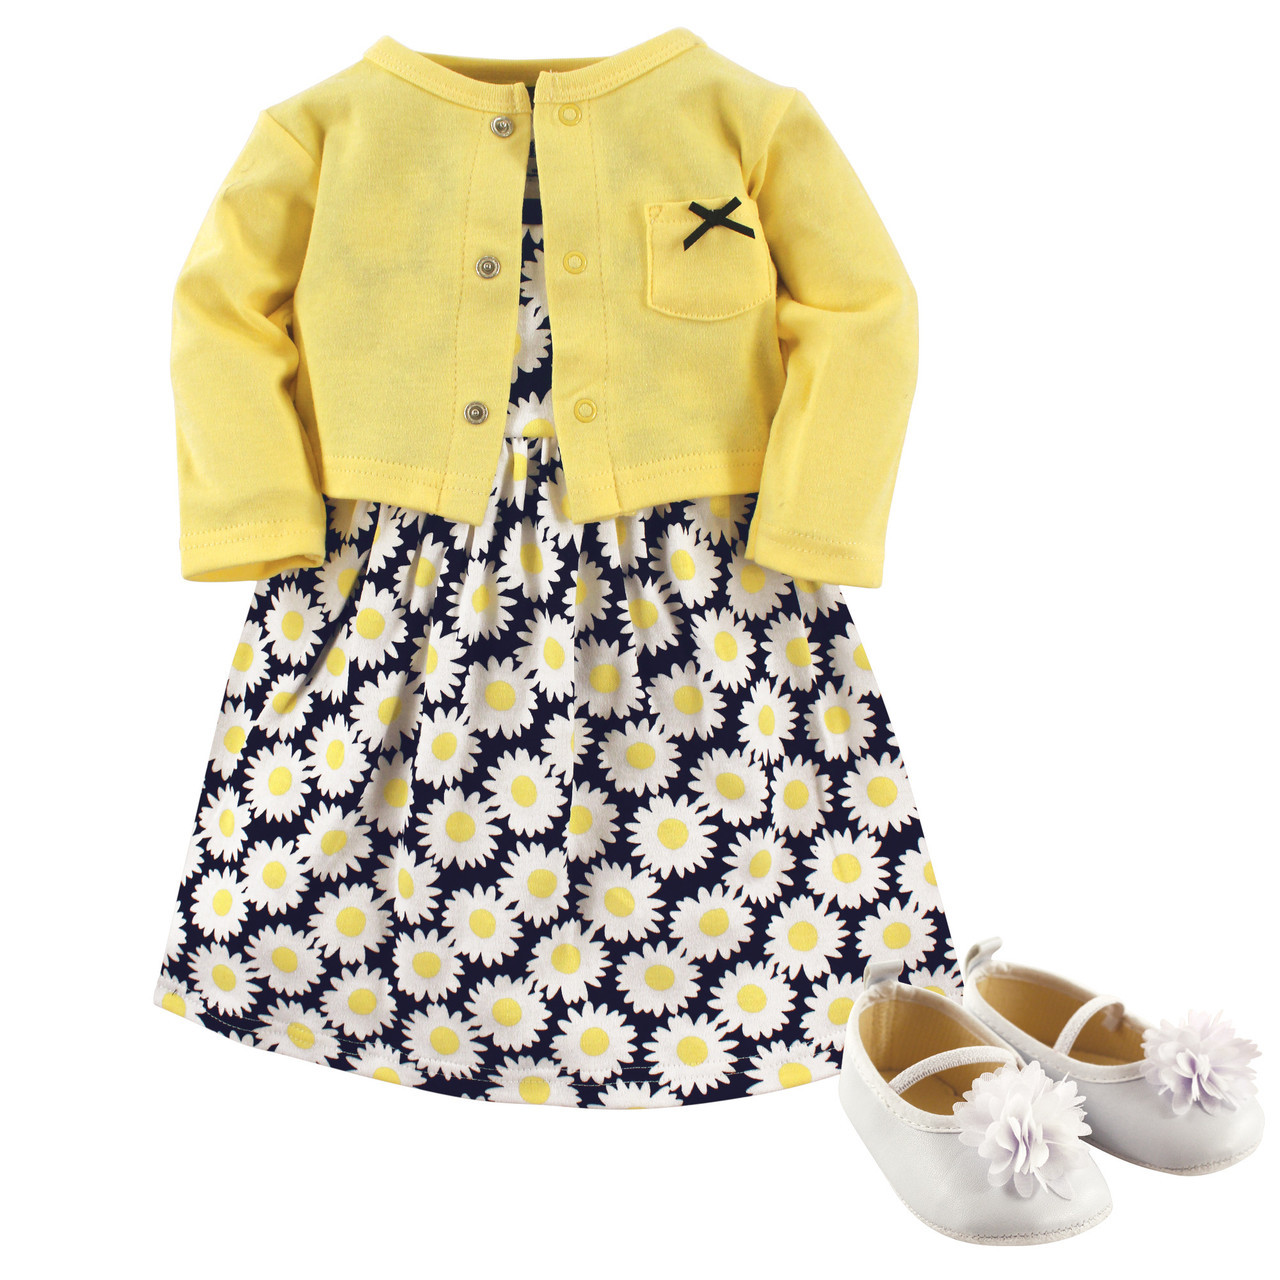 293520371 Dress, Cardigan and Shoes, 3-Piece Set, Daisies - Hudson Childrenswear